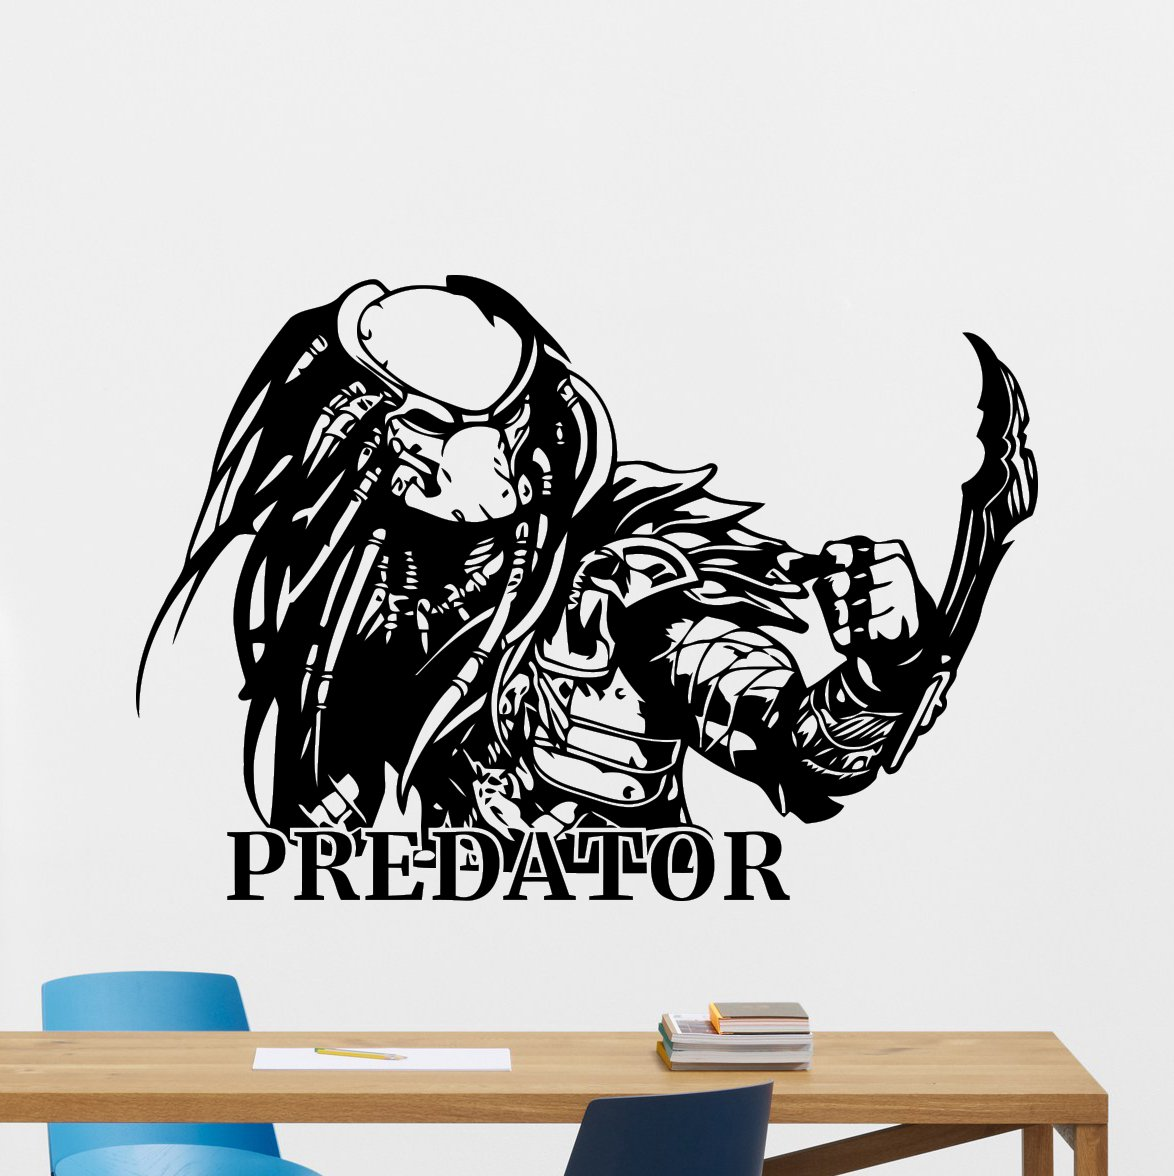 Predator wall decal comics cartoons cool decals vinyl sticker superhero alien movie mortal kombat x wall art design housewares kids room bedroom decor